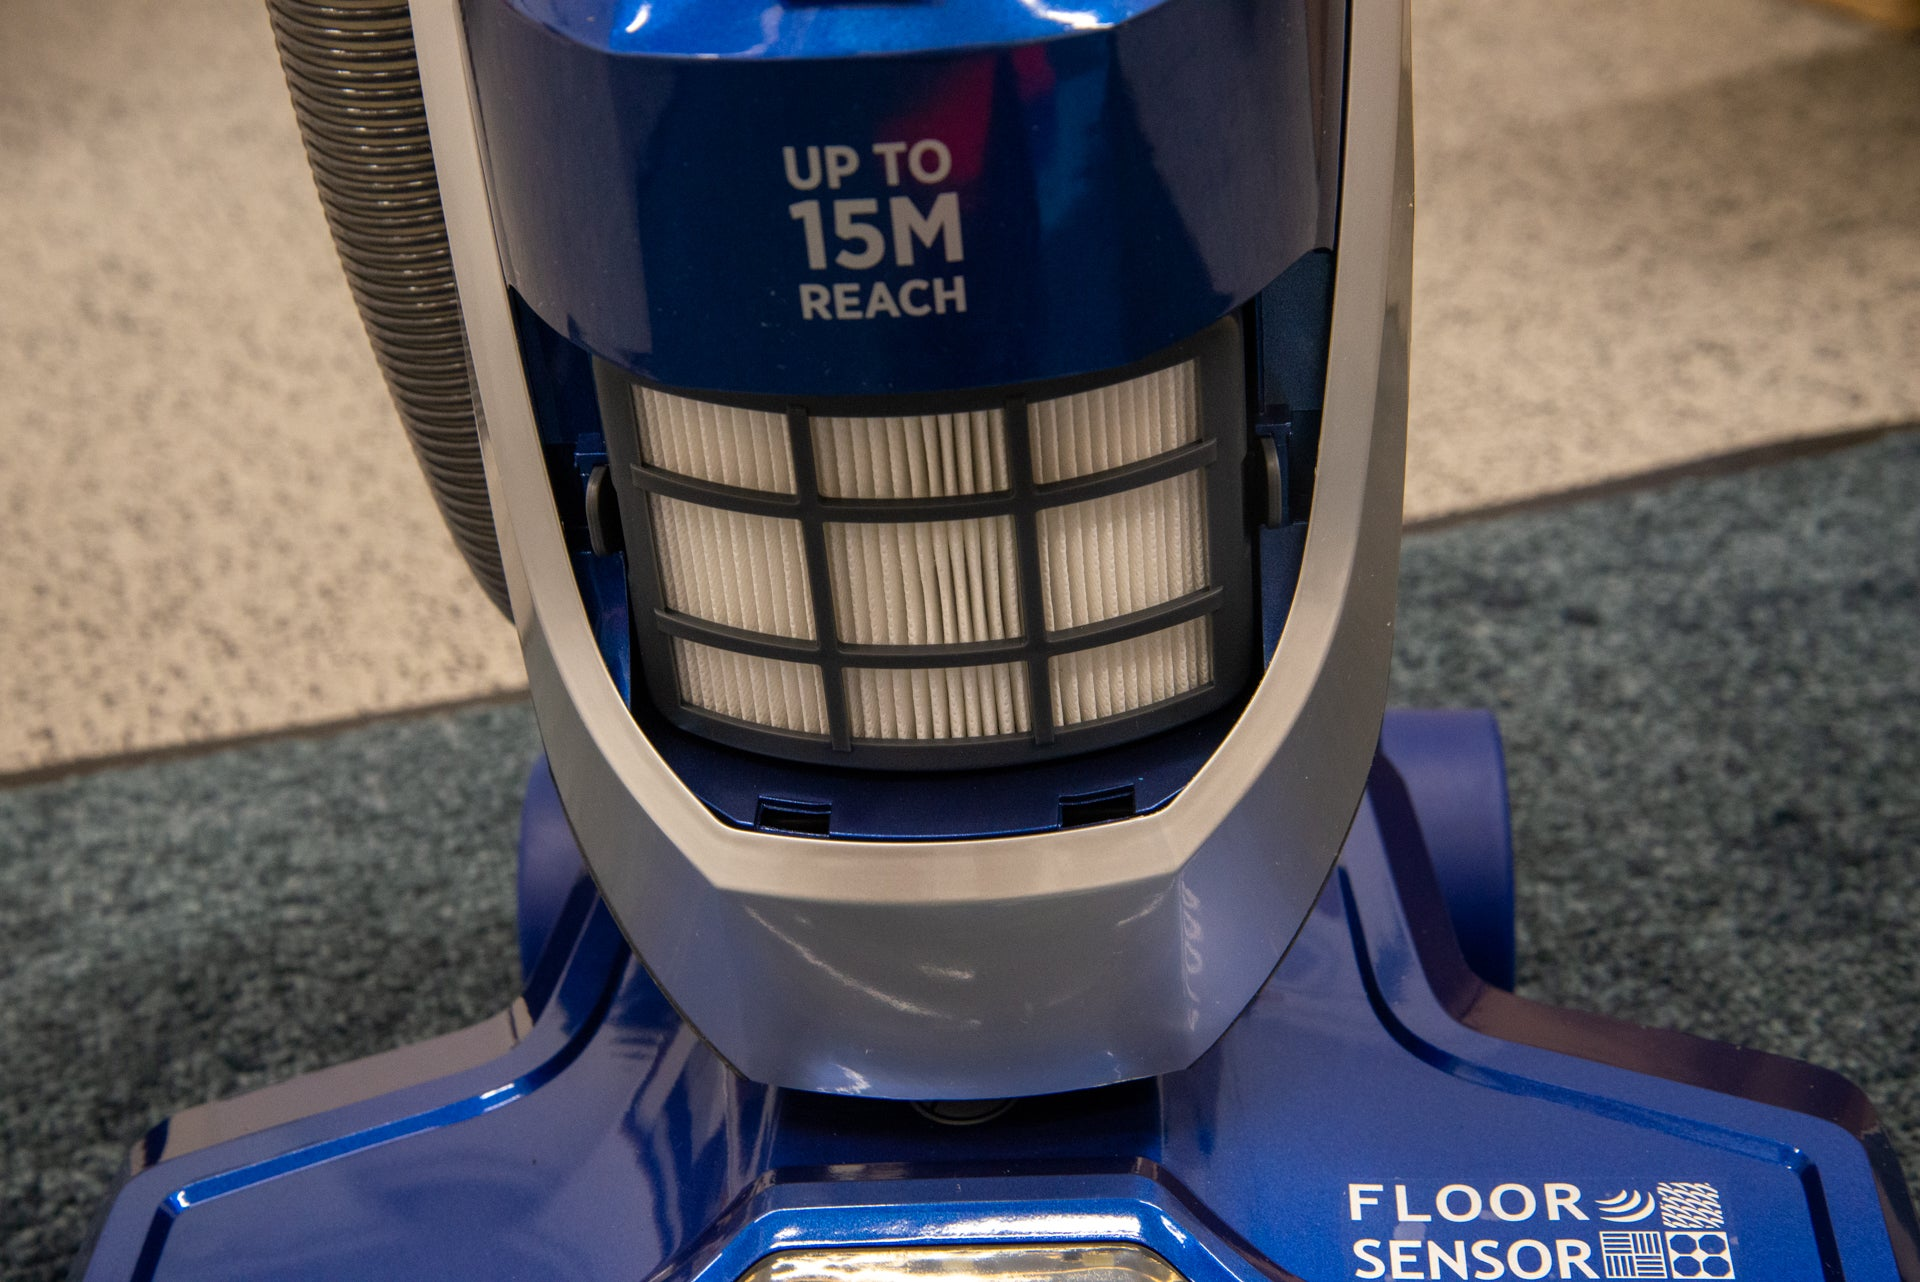 Hoover H-Upright 500 Plus HEPA filter